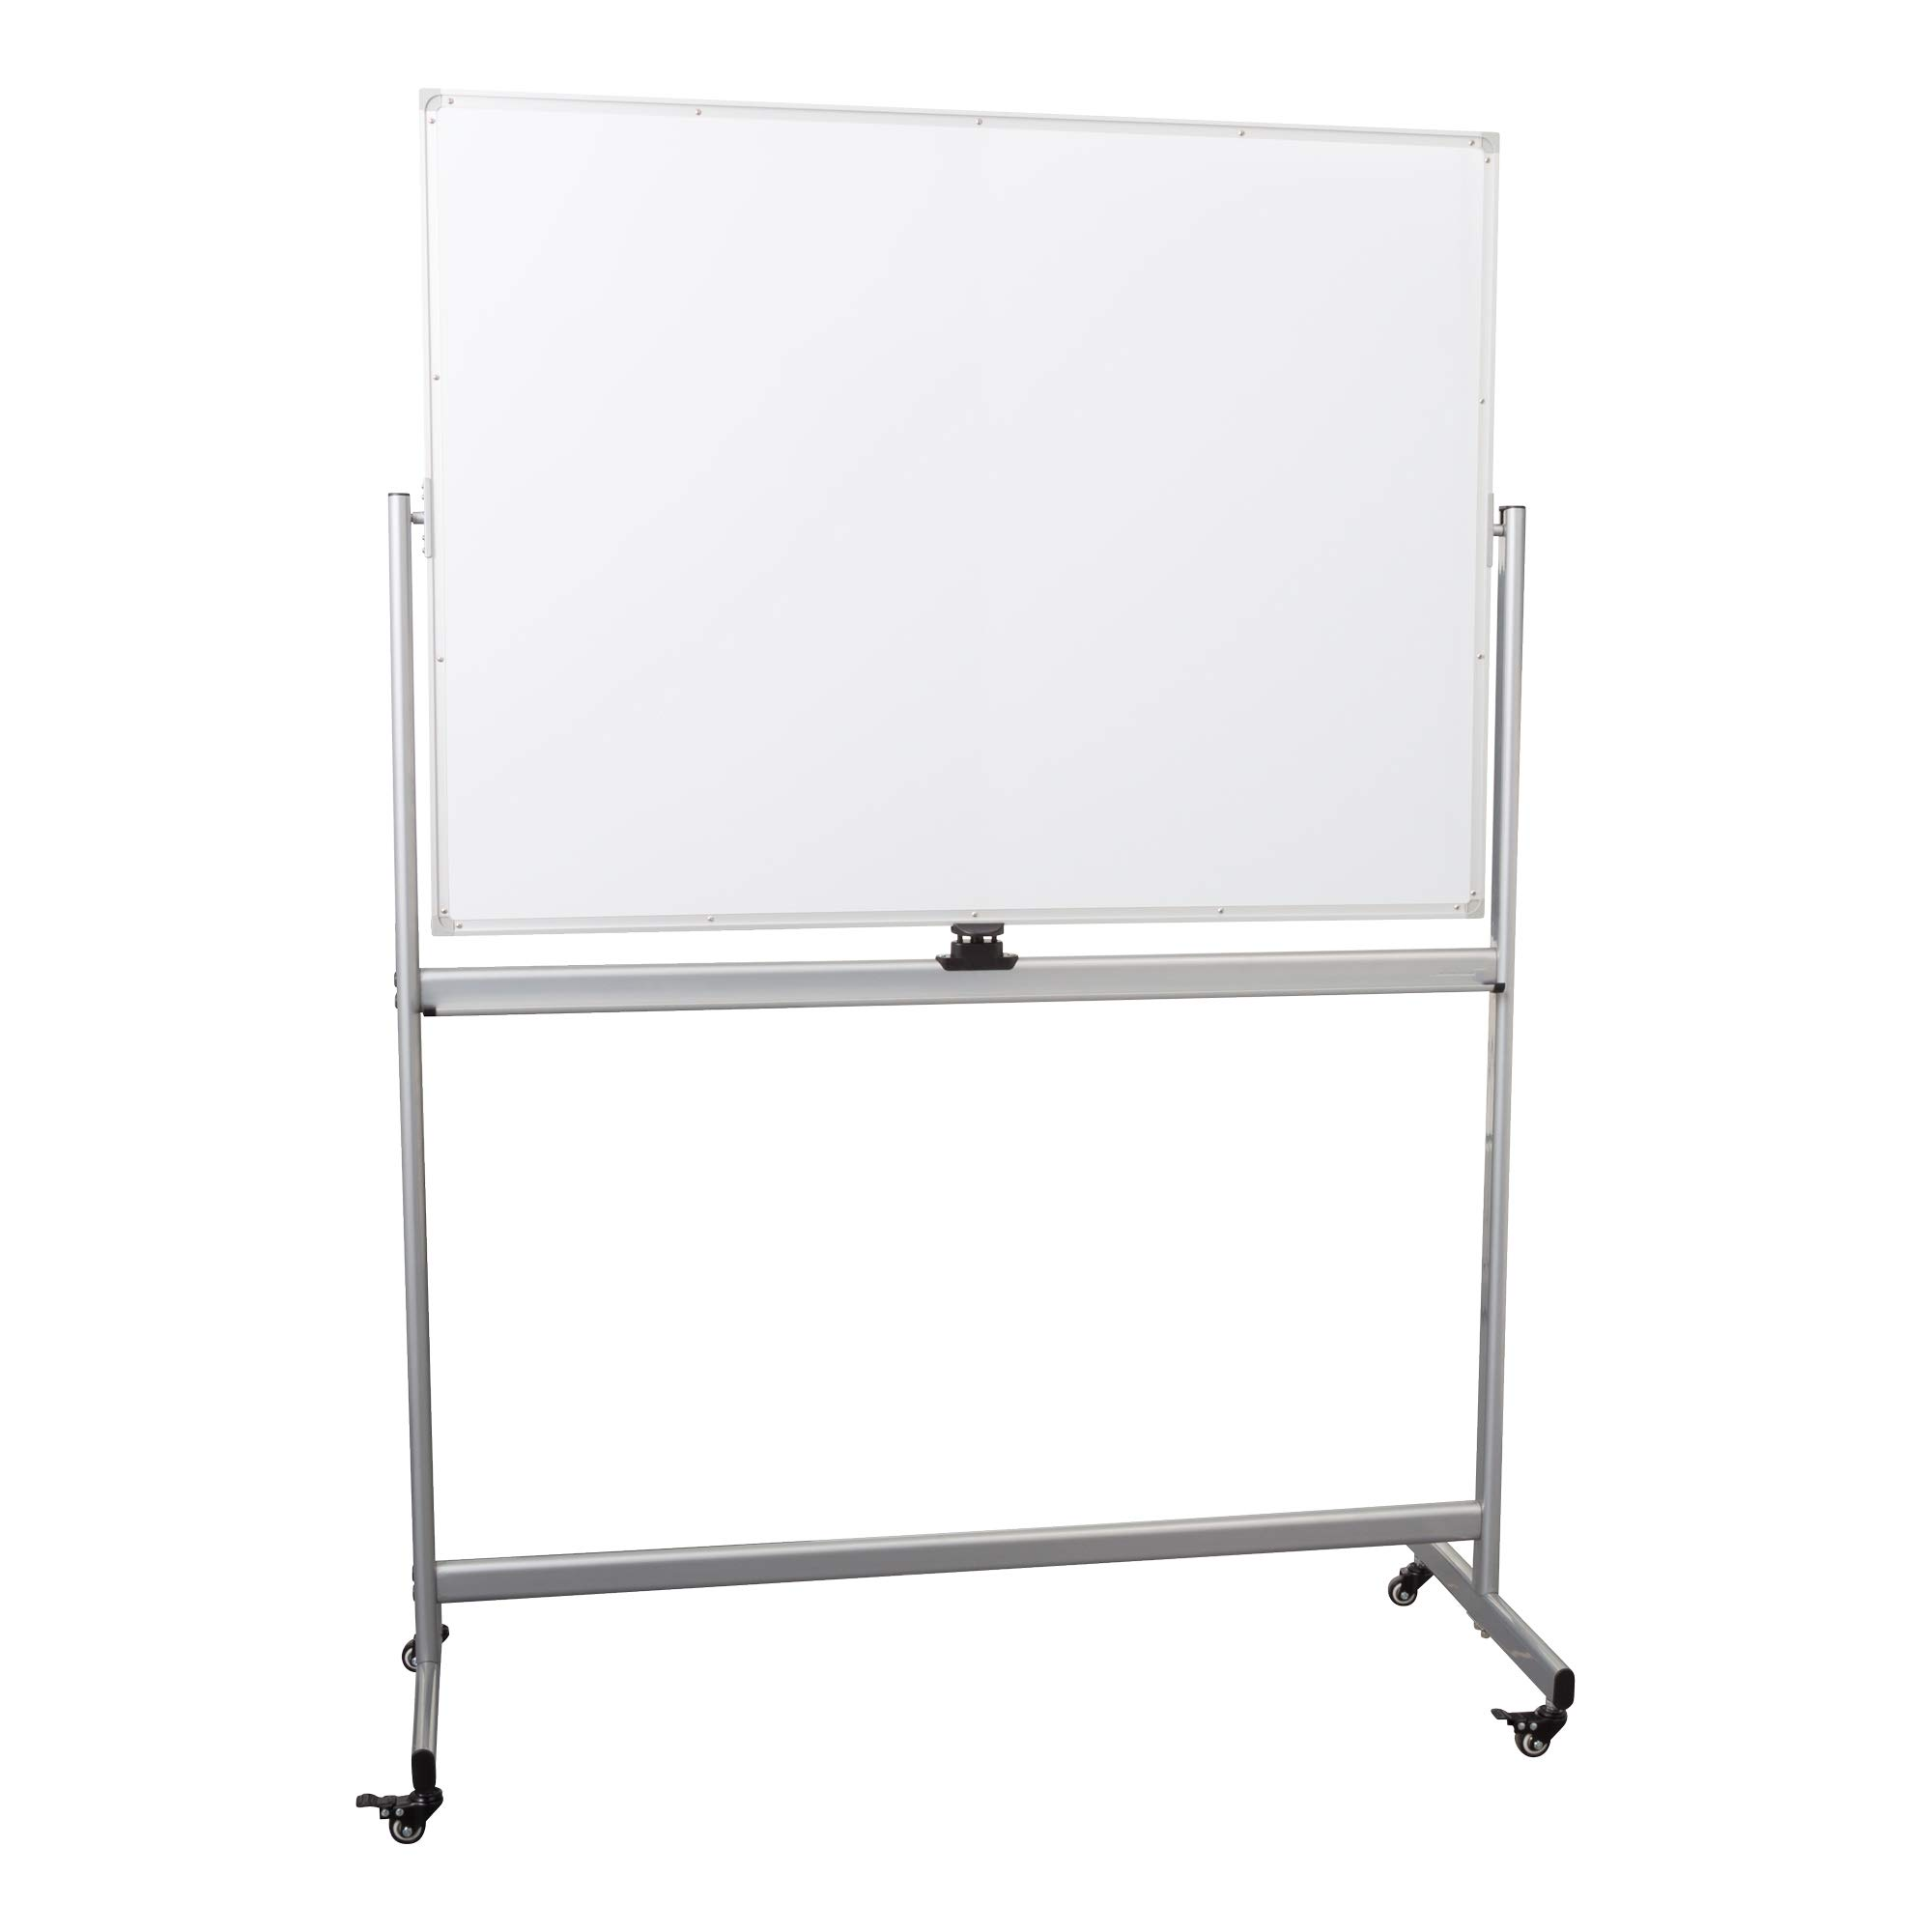 Learniture Double-Sided Mobile Magnetic Marker Board, 4' W x 3' H, White, LNT-RCE-3048-PK-SO